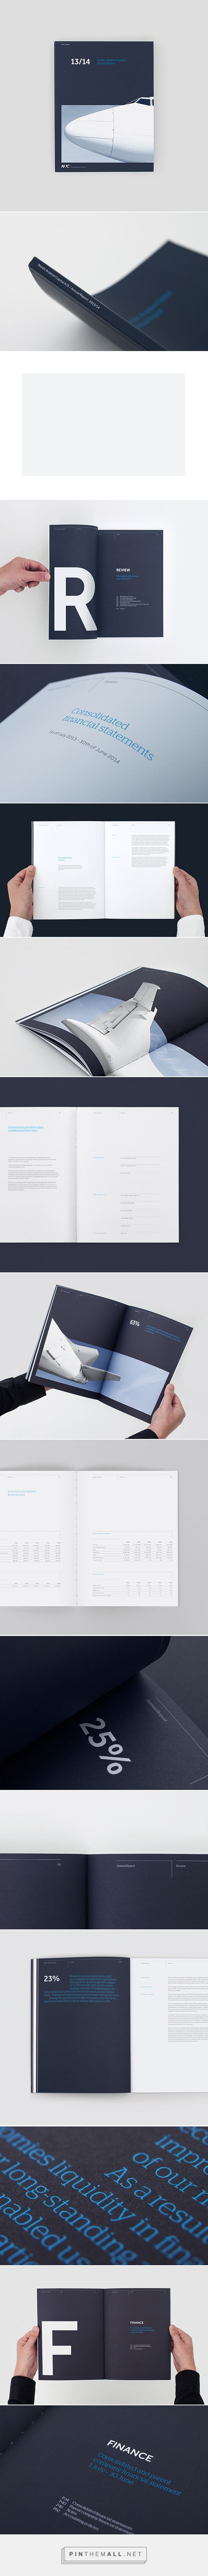 Design pornography clean and simple, pure beauty. NAC - Annual Report on Behance もっと見る